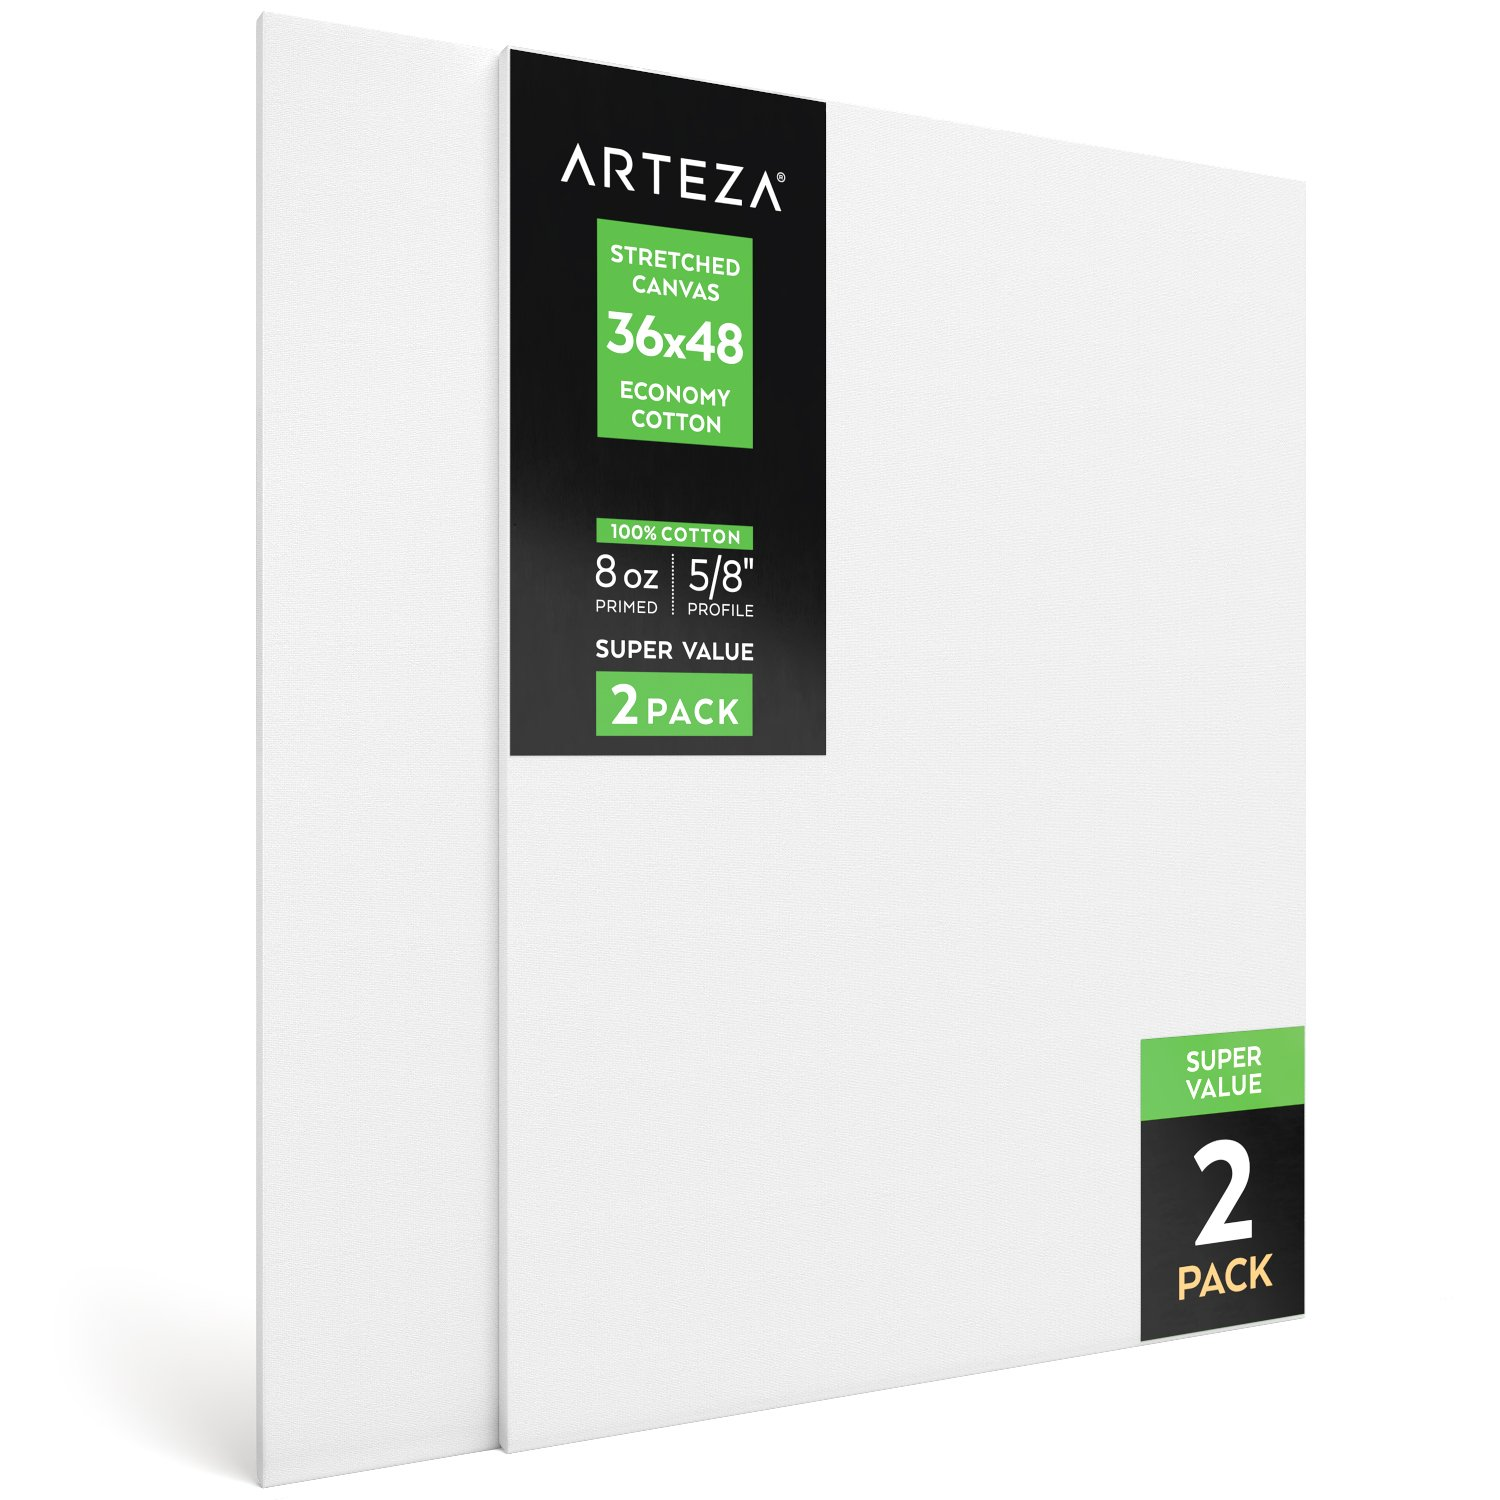 Arteza 36x48'' Stretched White Blank Canvas, Bulk Pack of 2, Primed, 100% Cotton for Painting, Acrylic Pouring, Oil Paint & Wet Art Media, Canvases for Professional Artist, Hobby Painters & Beginner by ARTEZA